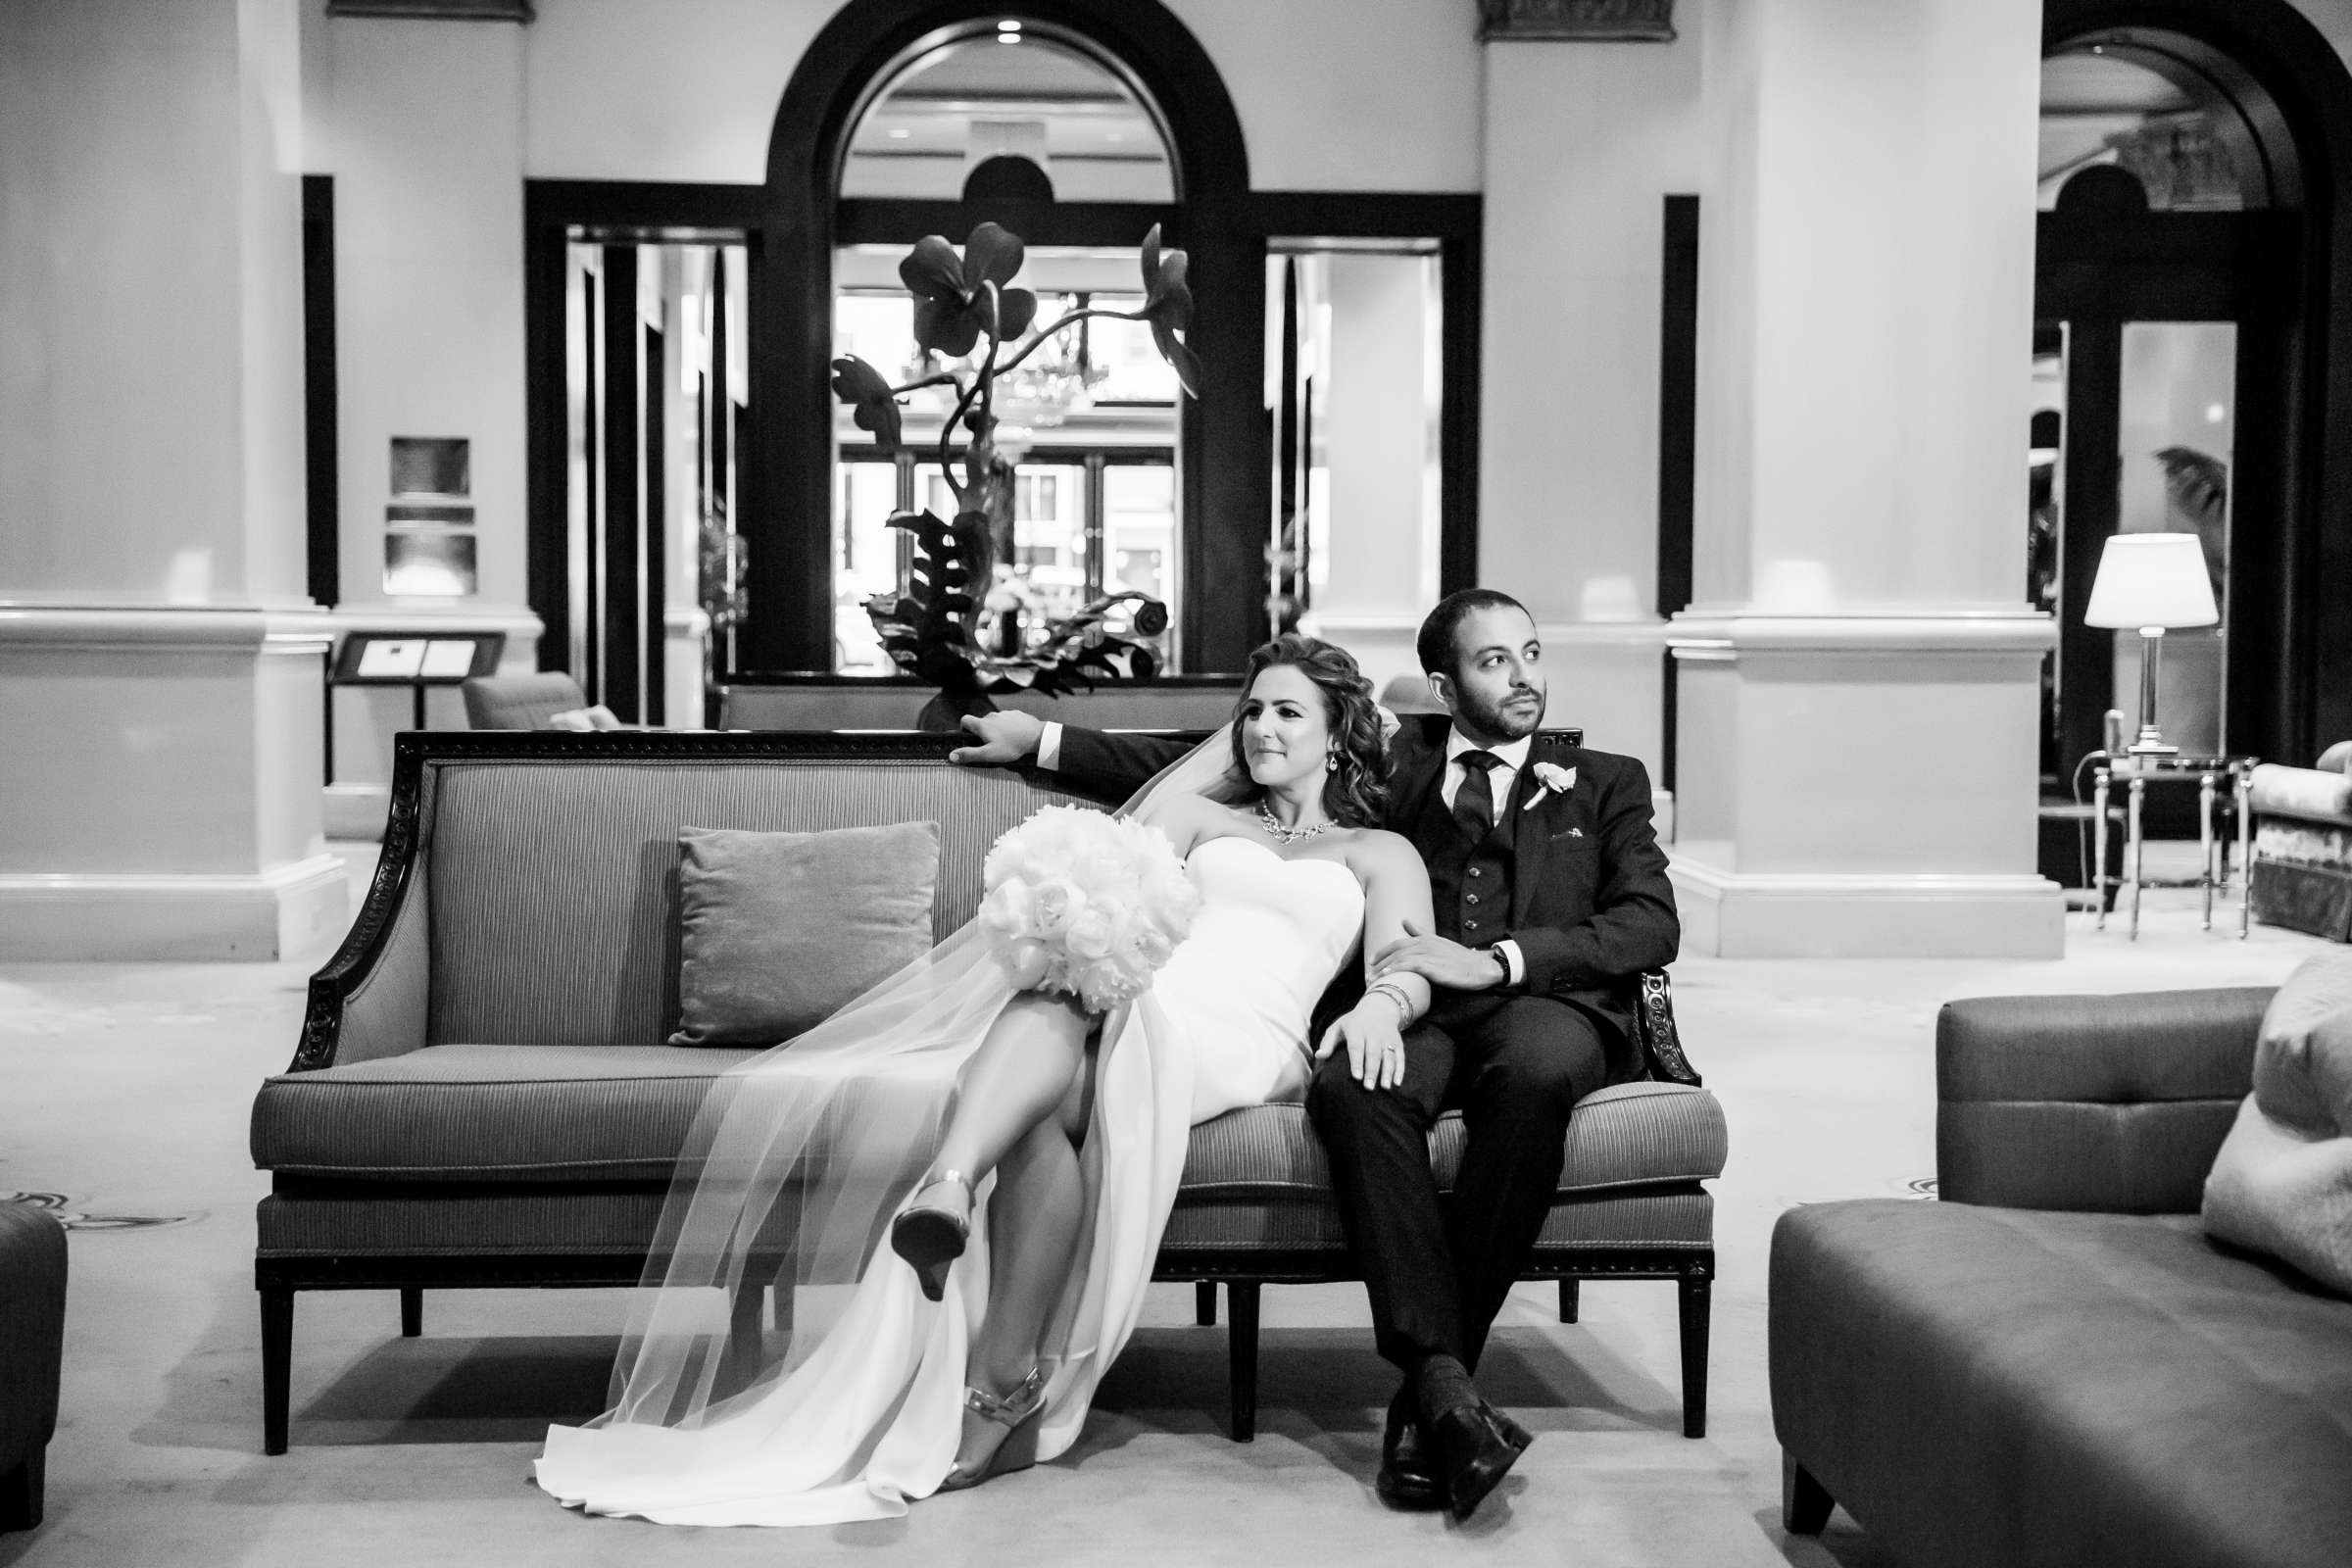 Classical moment, Black and White photo at San Diego Museum of Art Wedding coordinated by First Comes Love Weddings & Events, Ruthie and Larry Wedding Photo #236792 by True Photography